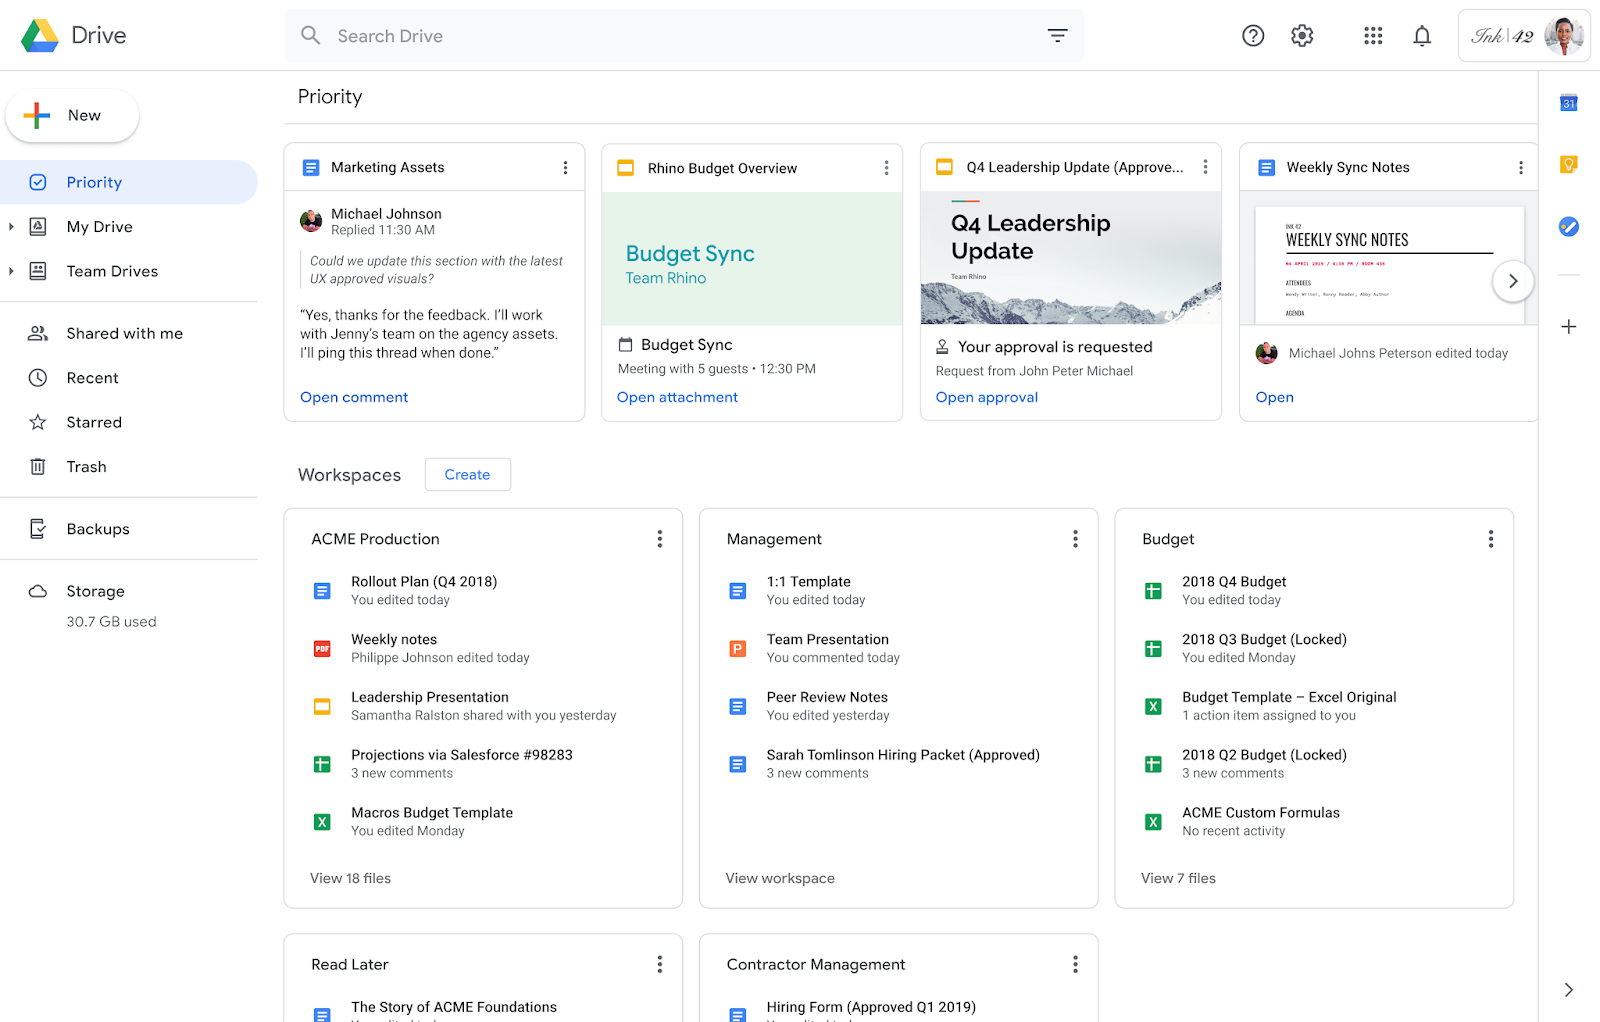 Work smarter with the new Priority page in Drive